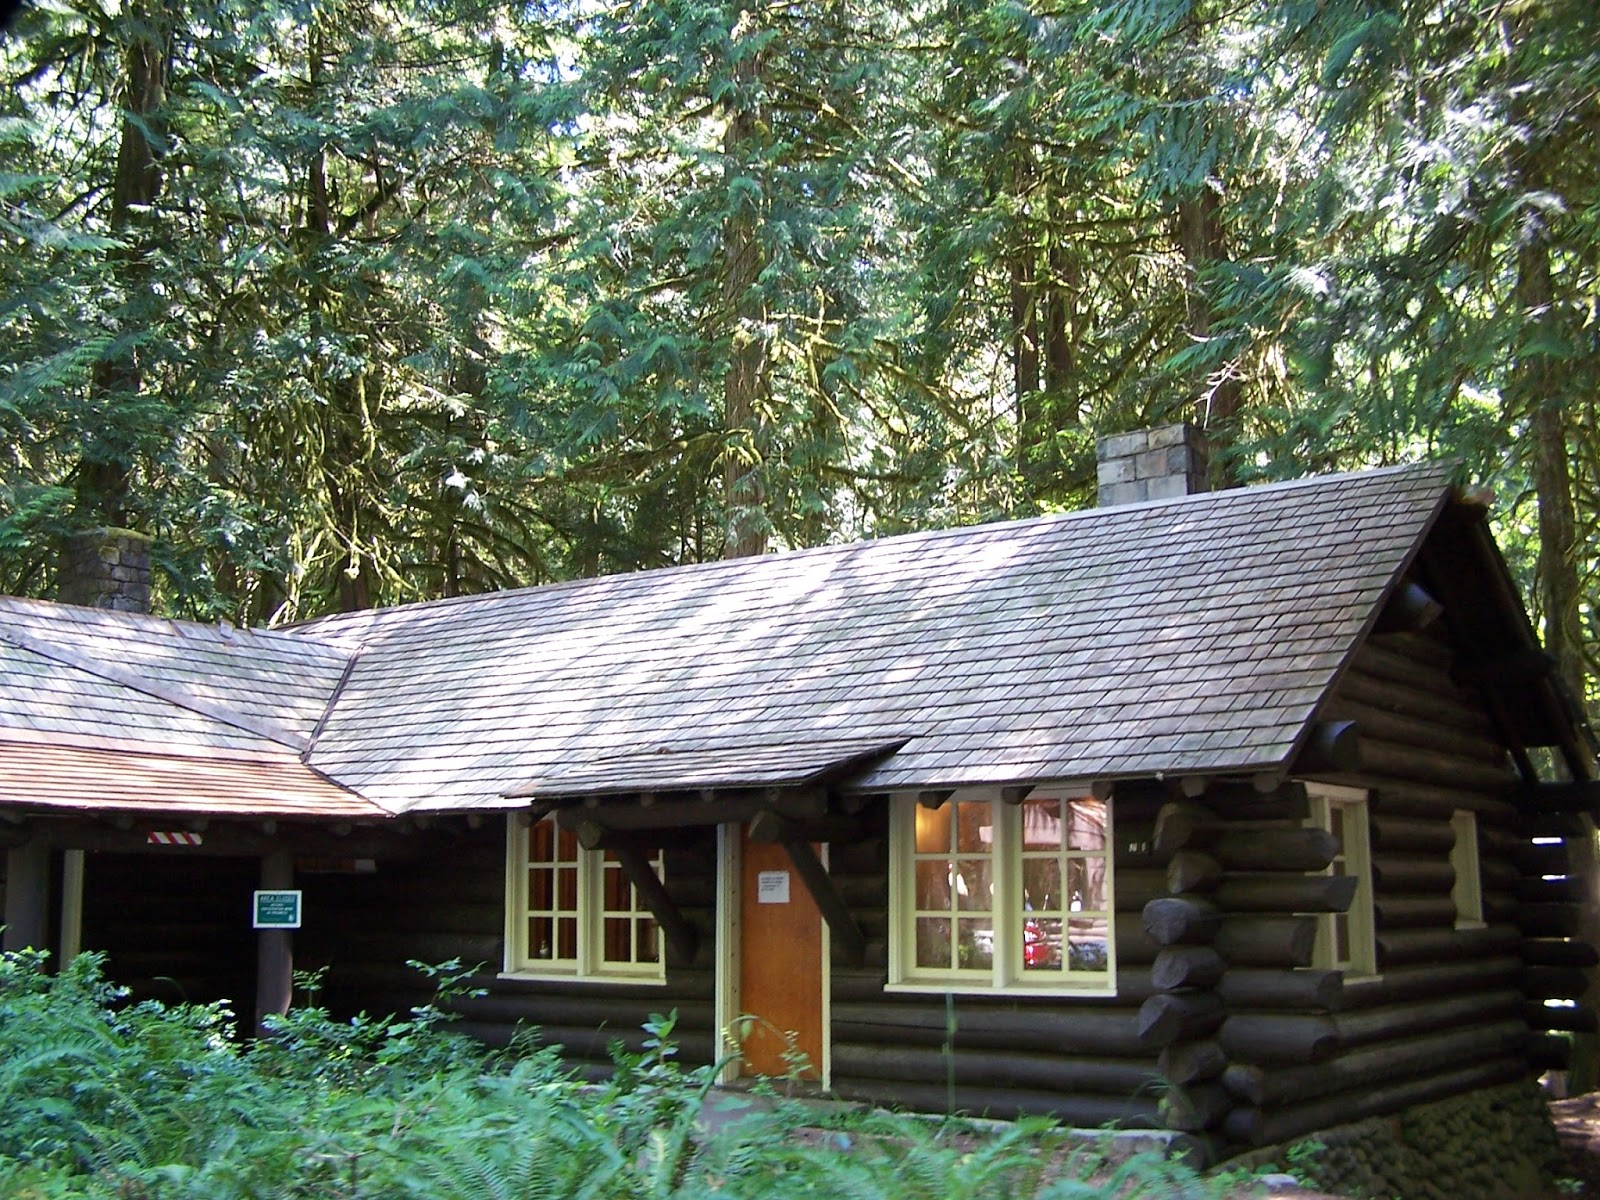 Beatrice euphemie the architecture of mt rainier for Log cabin architecture